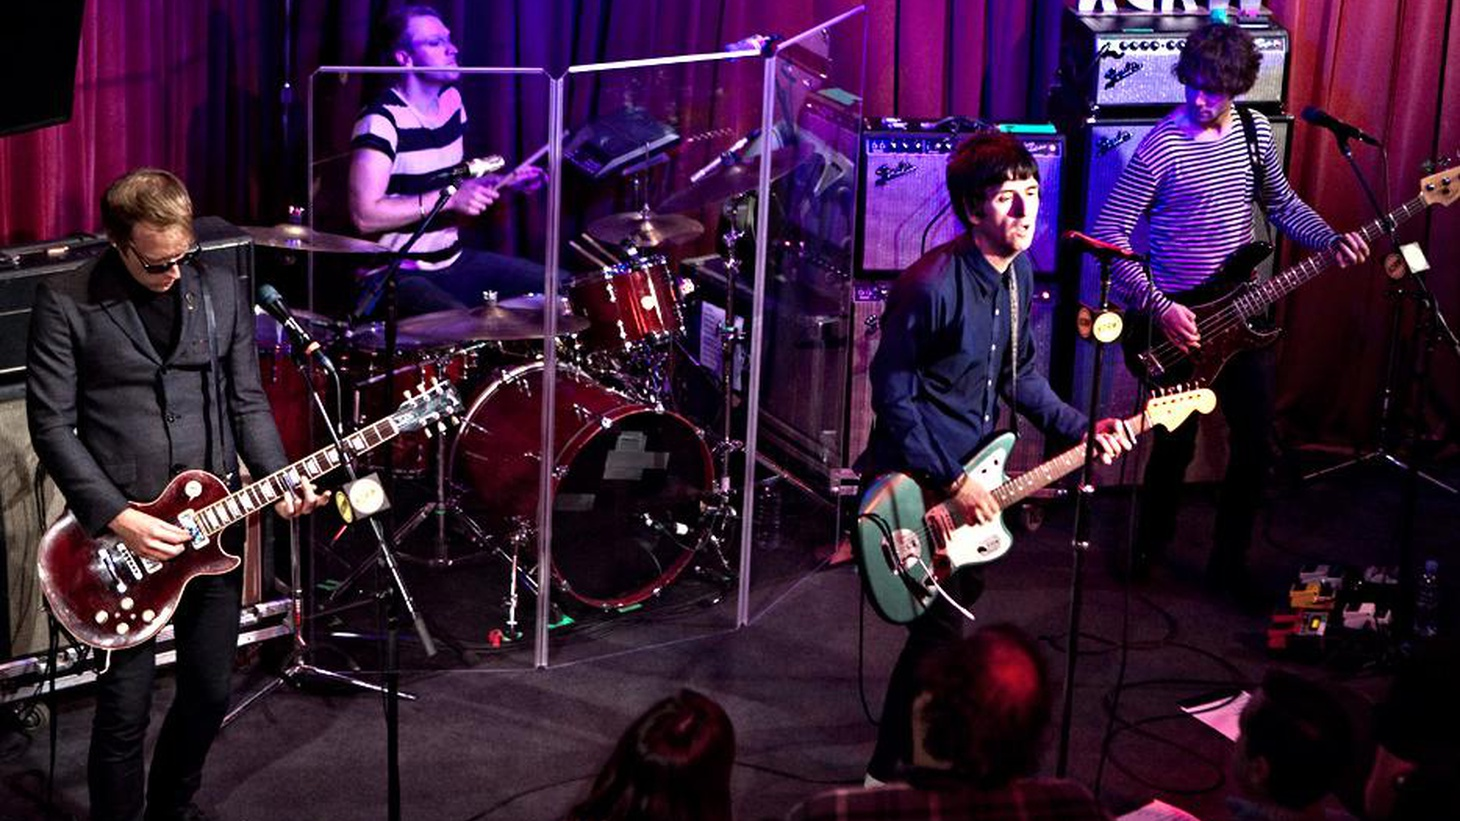 Legendary guitarist for The Smiths, Johnny Marr, performed new songs and several classics as part of KCRW's Apogee series.